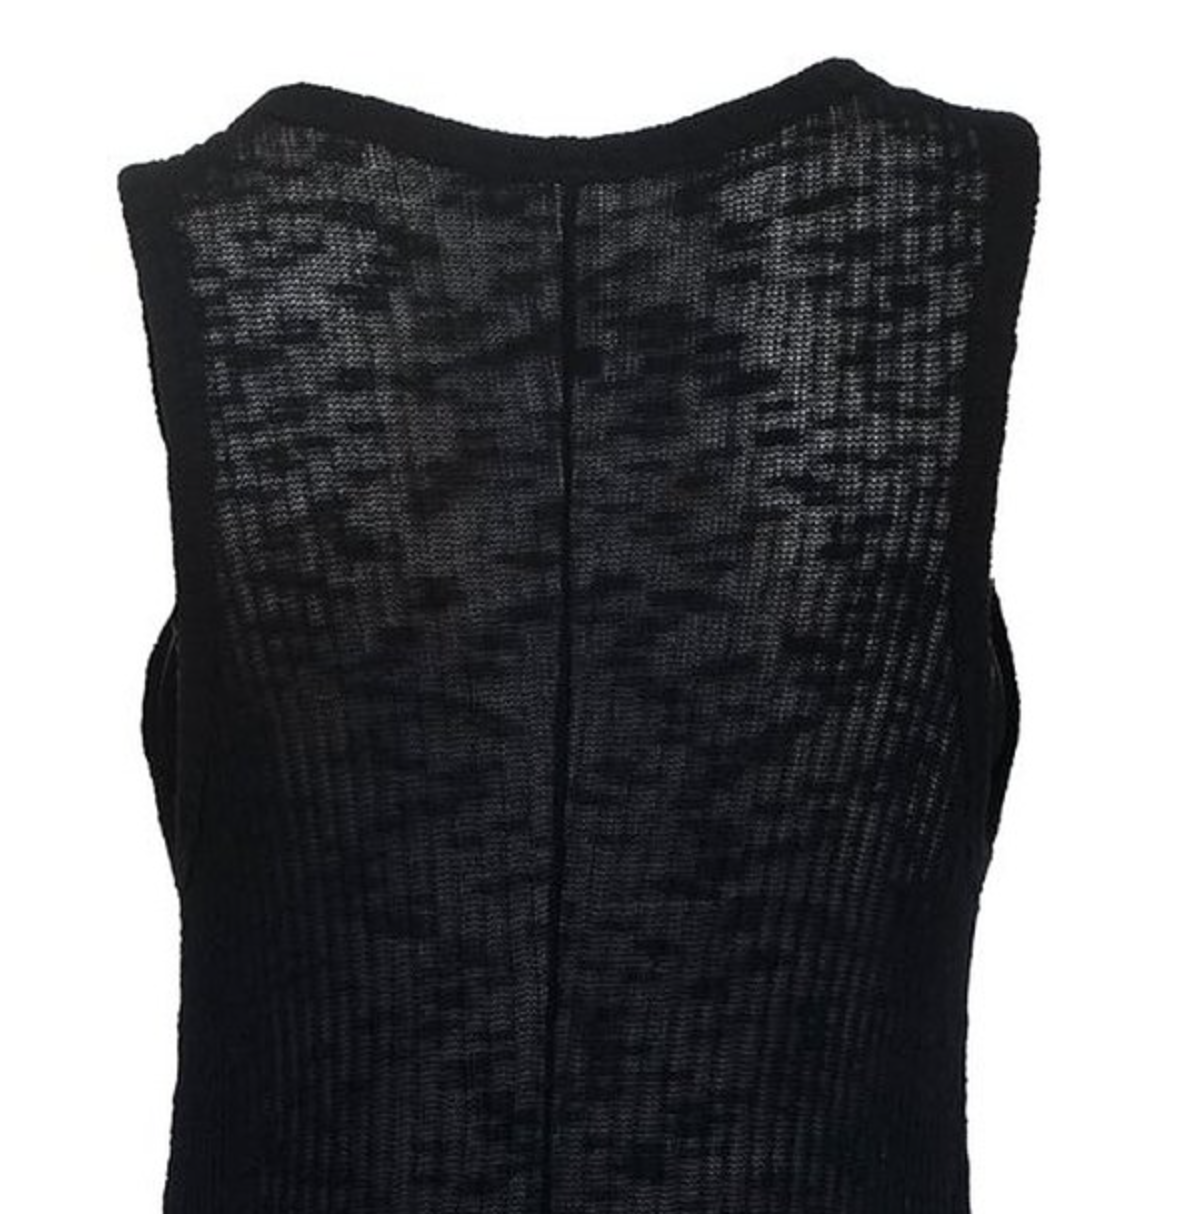 Semi-Sheer Rockstar Tank (Sizes XL - 3XL)